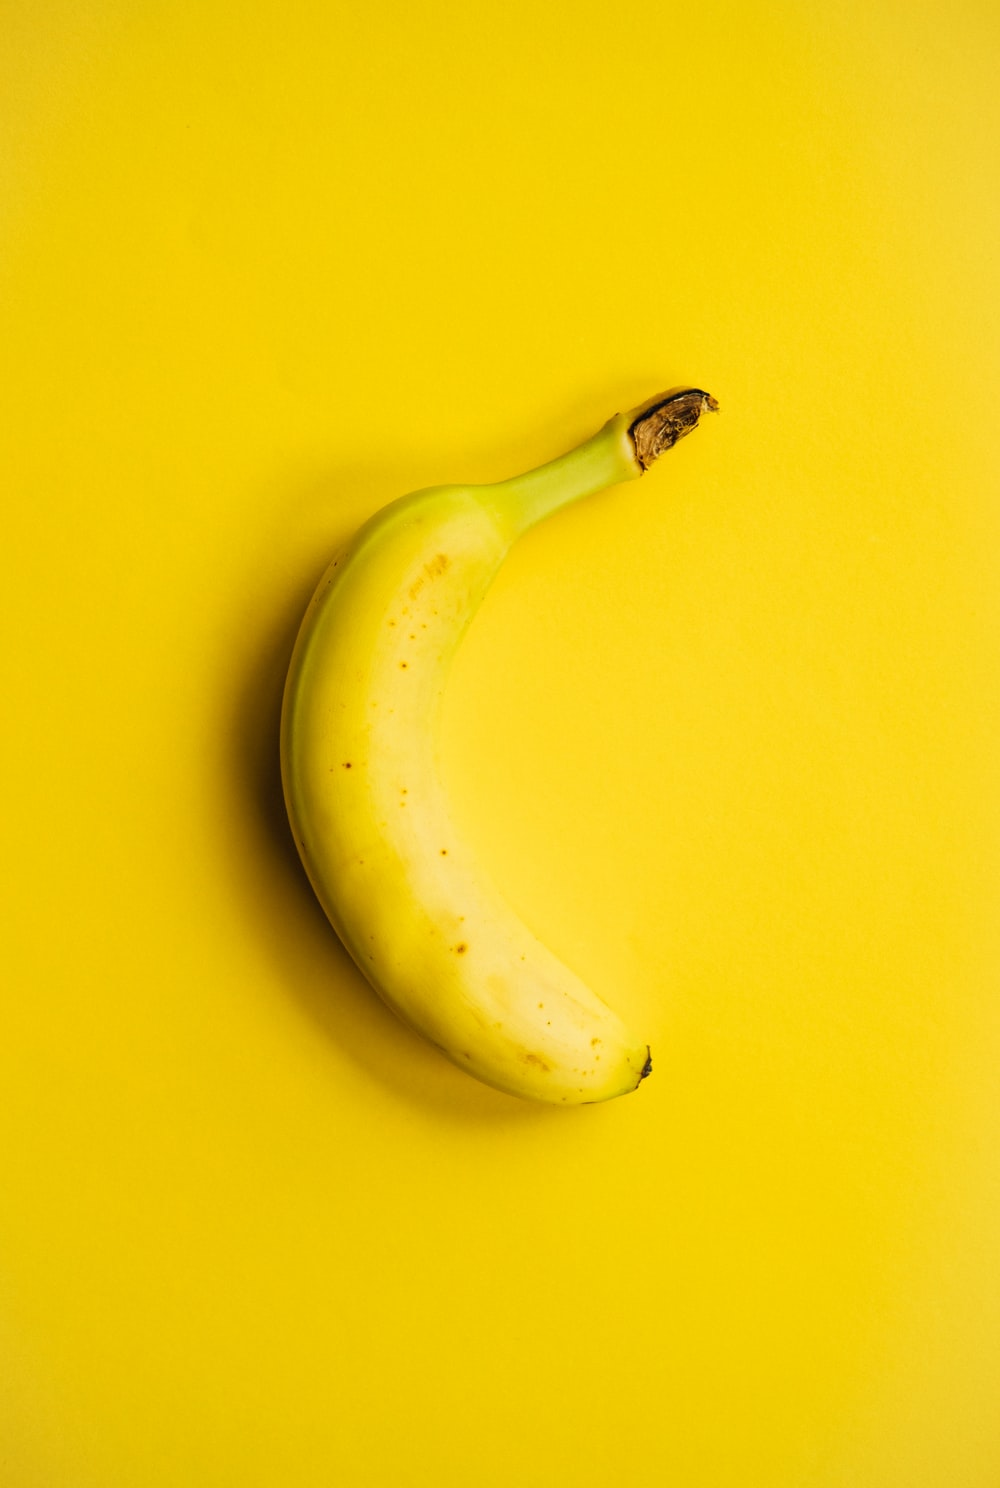 yellow banana fruit on yellow surface